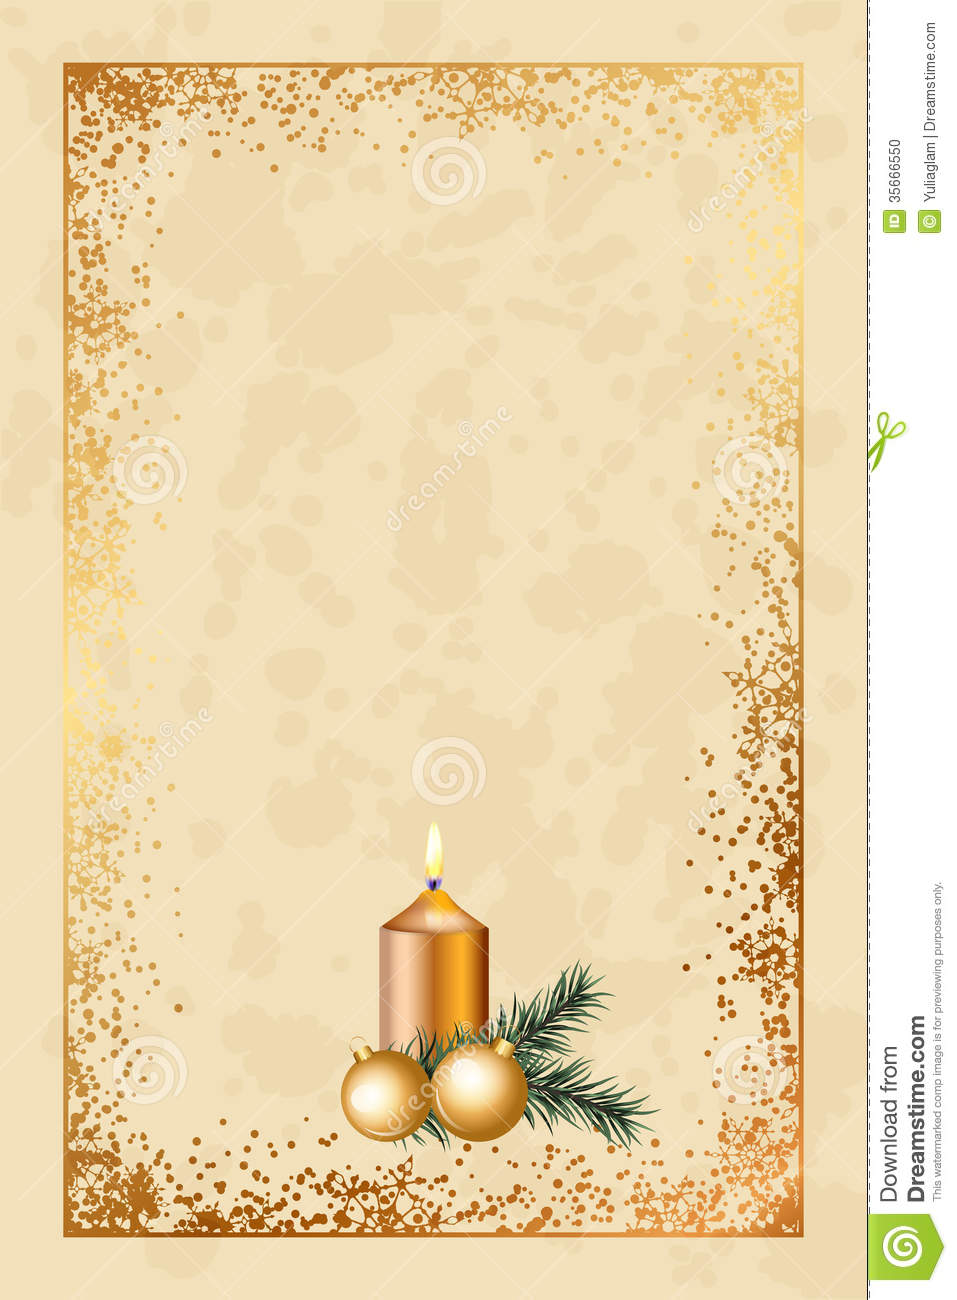 Old Fashioned Christmas Card Stock Vector - Illustration of candle ...